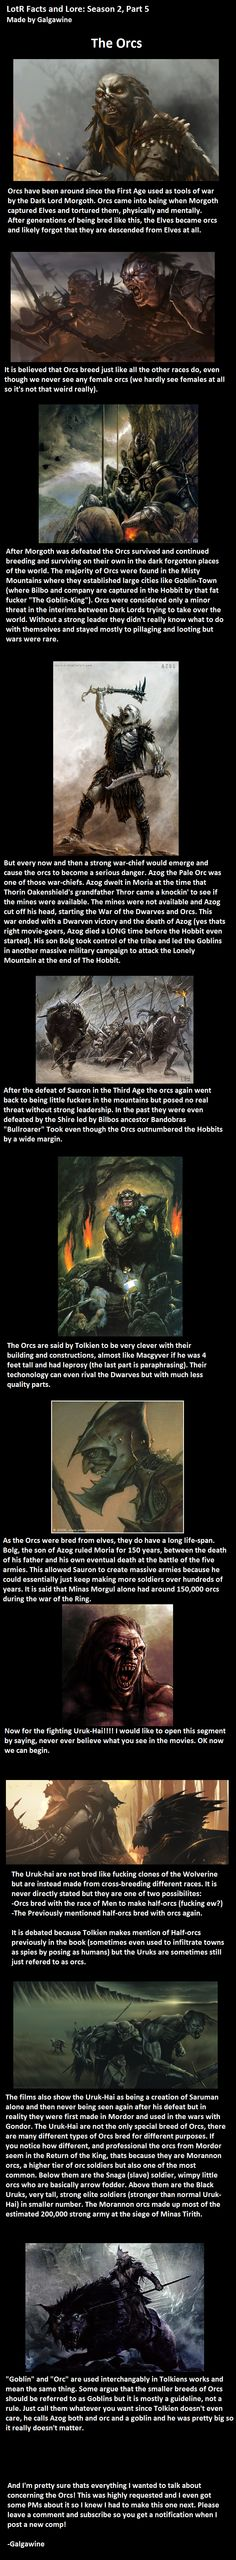 LotR Facts/Lore